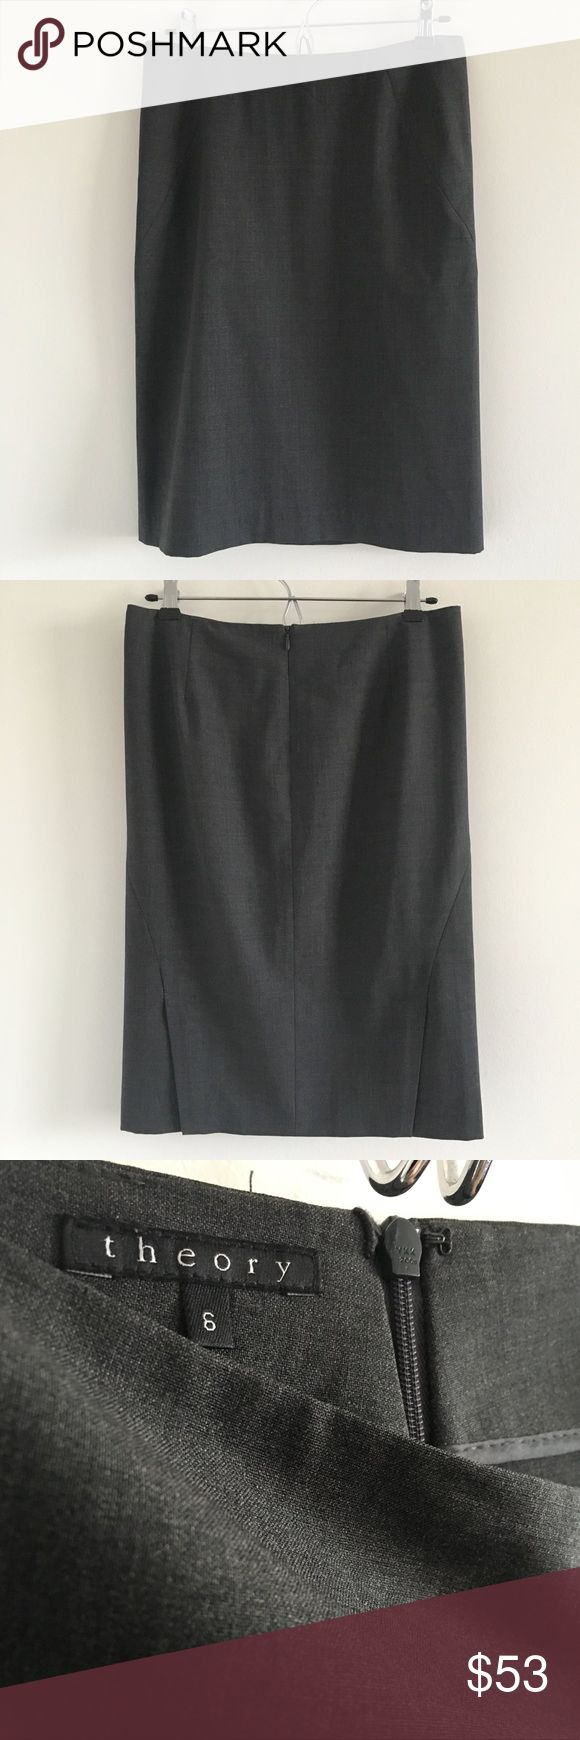 🆕 Theory Golda 2 Urban Pencil Skirt in Charcoal A classic pencil skirt in suiting wool featuring side vents in back for a sexy edge.  Wear to work for total boss vibes.  Stats (laying flat): Length: approx. 23"